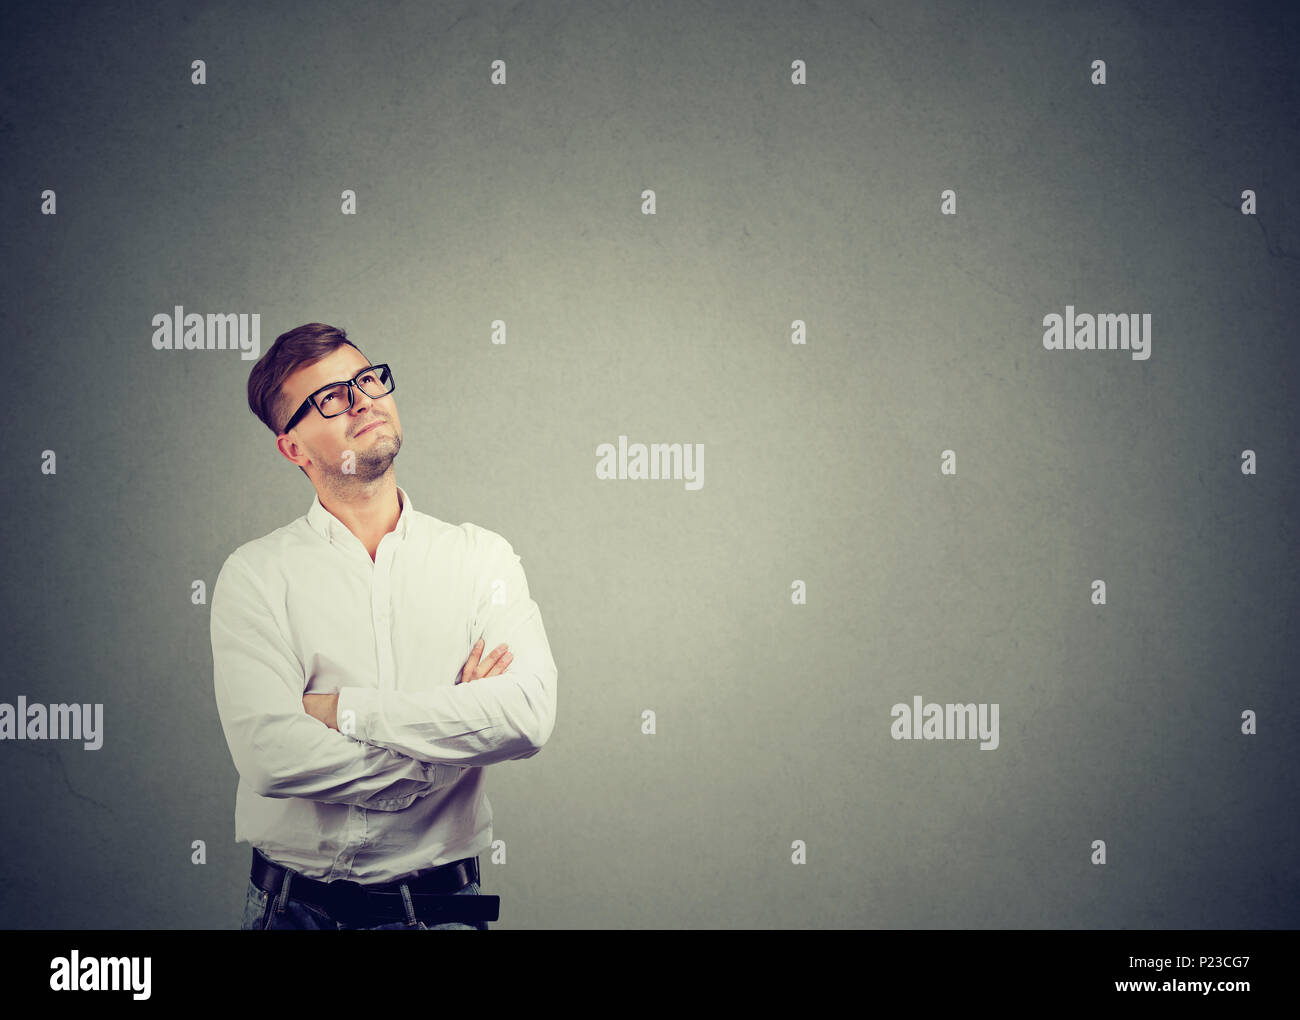 Handsome man in white shirt and glasses looking up and daydreaming dreaming of career. - Stock Image